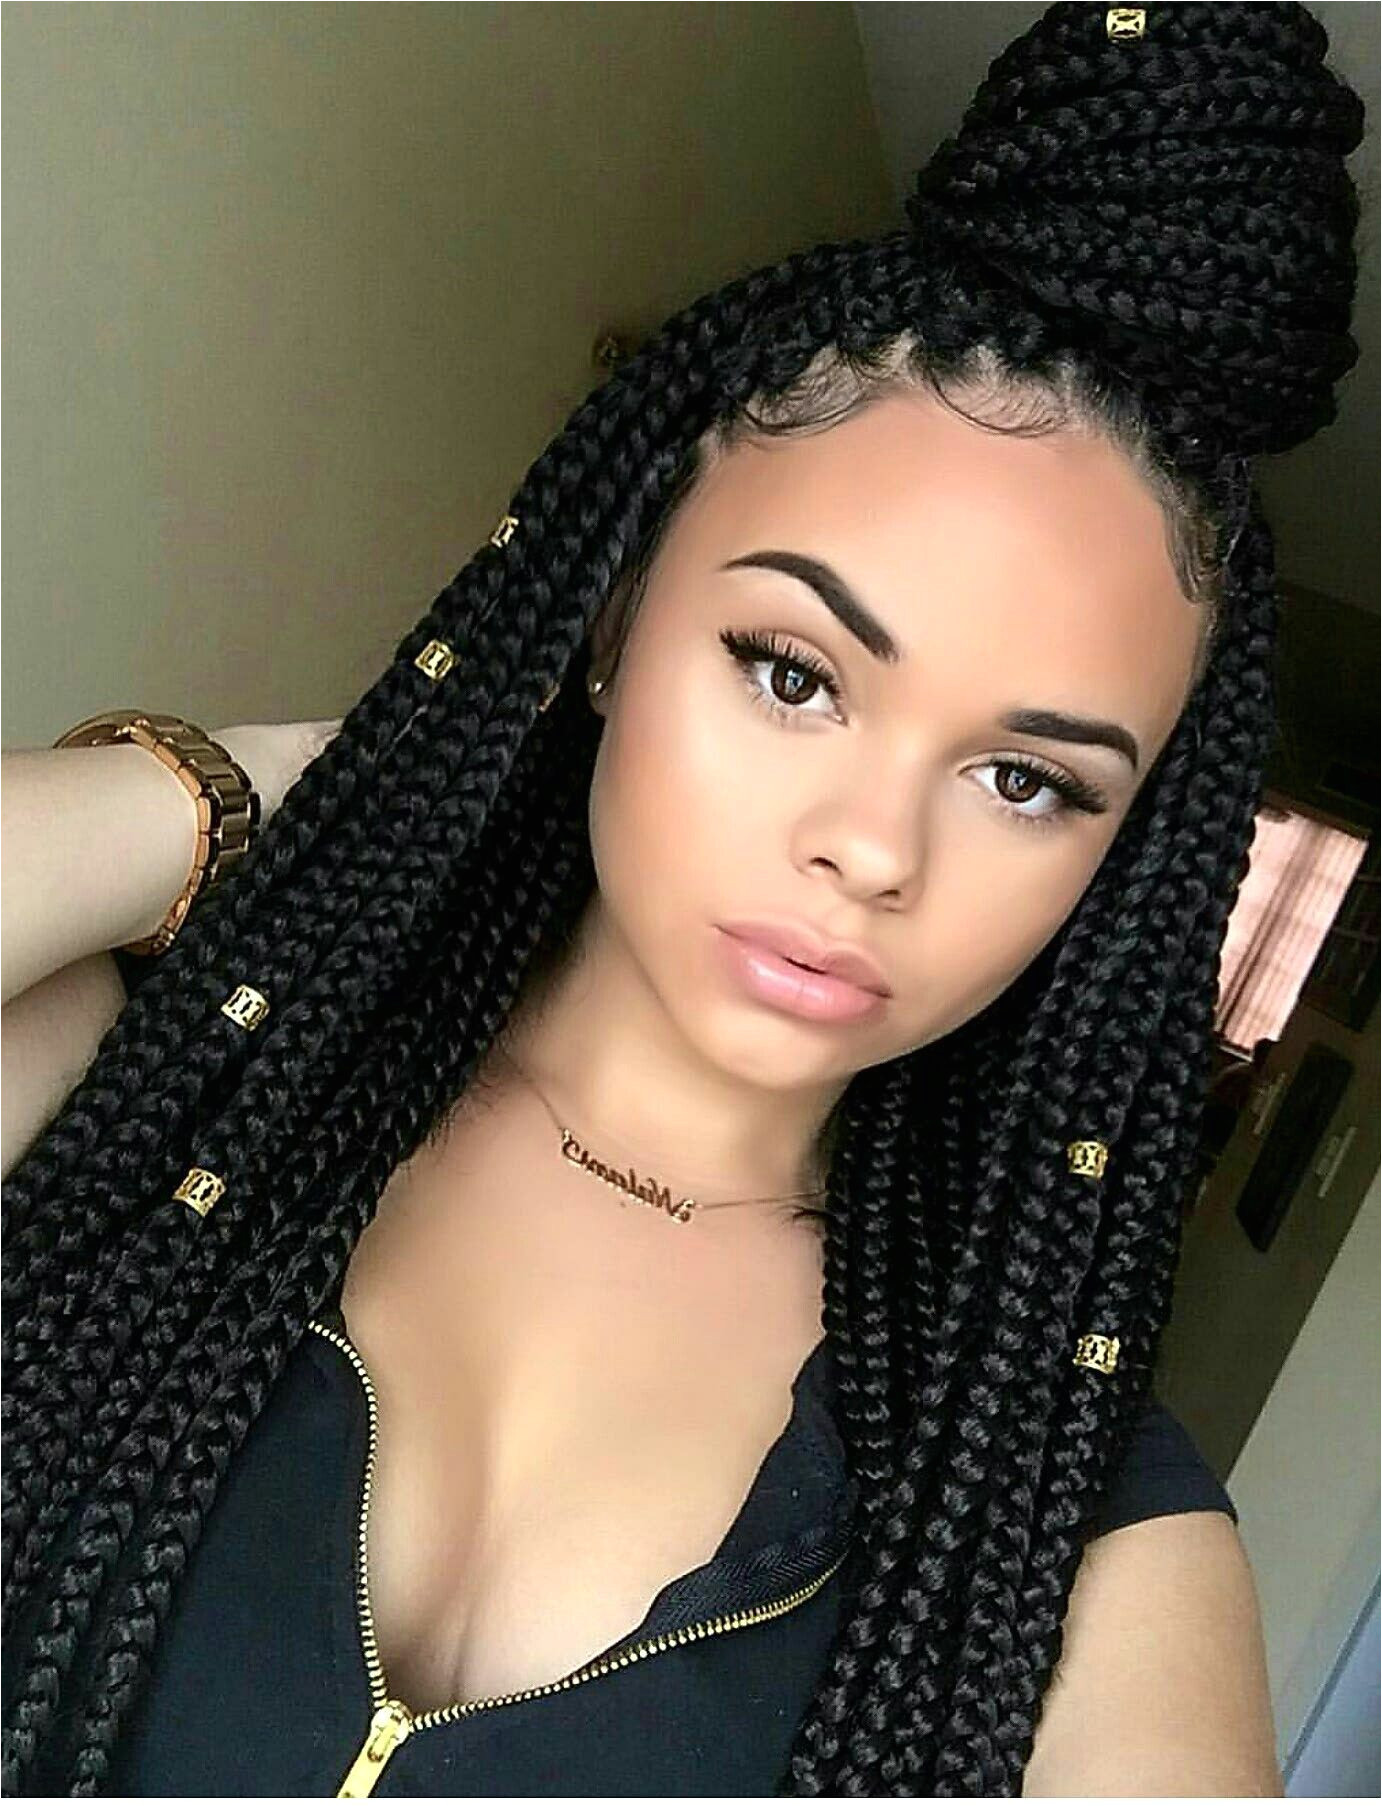 taraivia her ig is therealmami Box Braids Styling Hairstyles For Box Braids